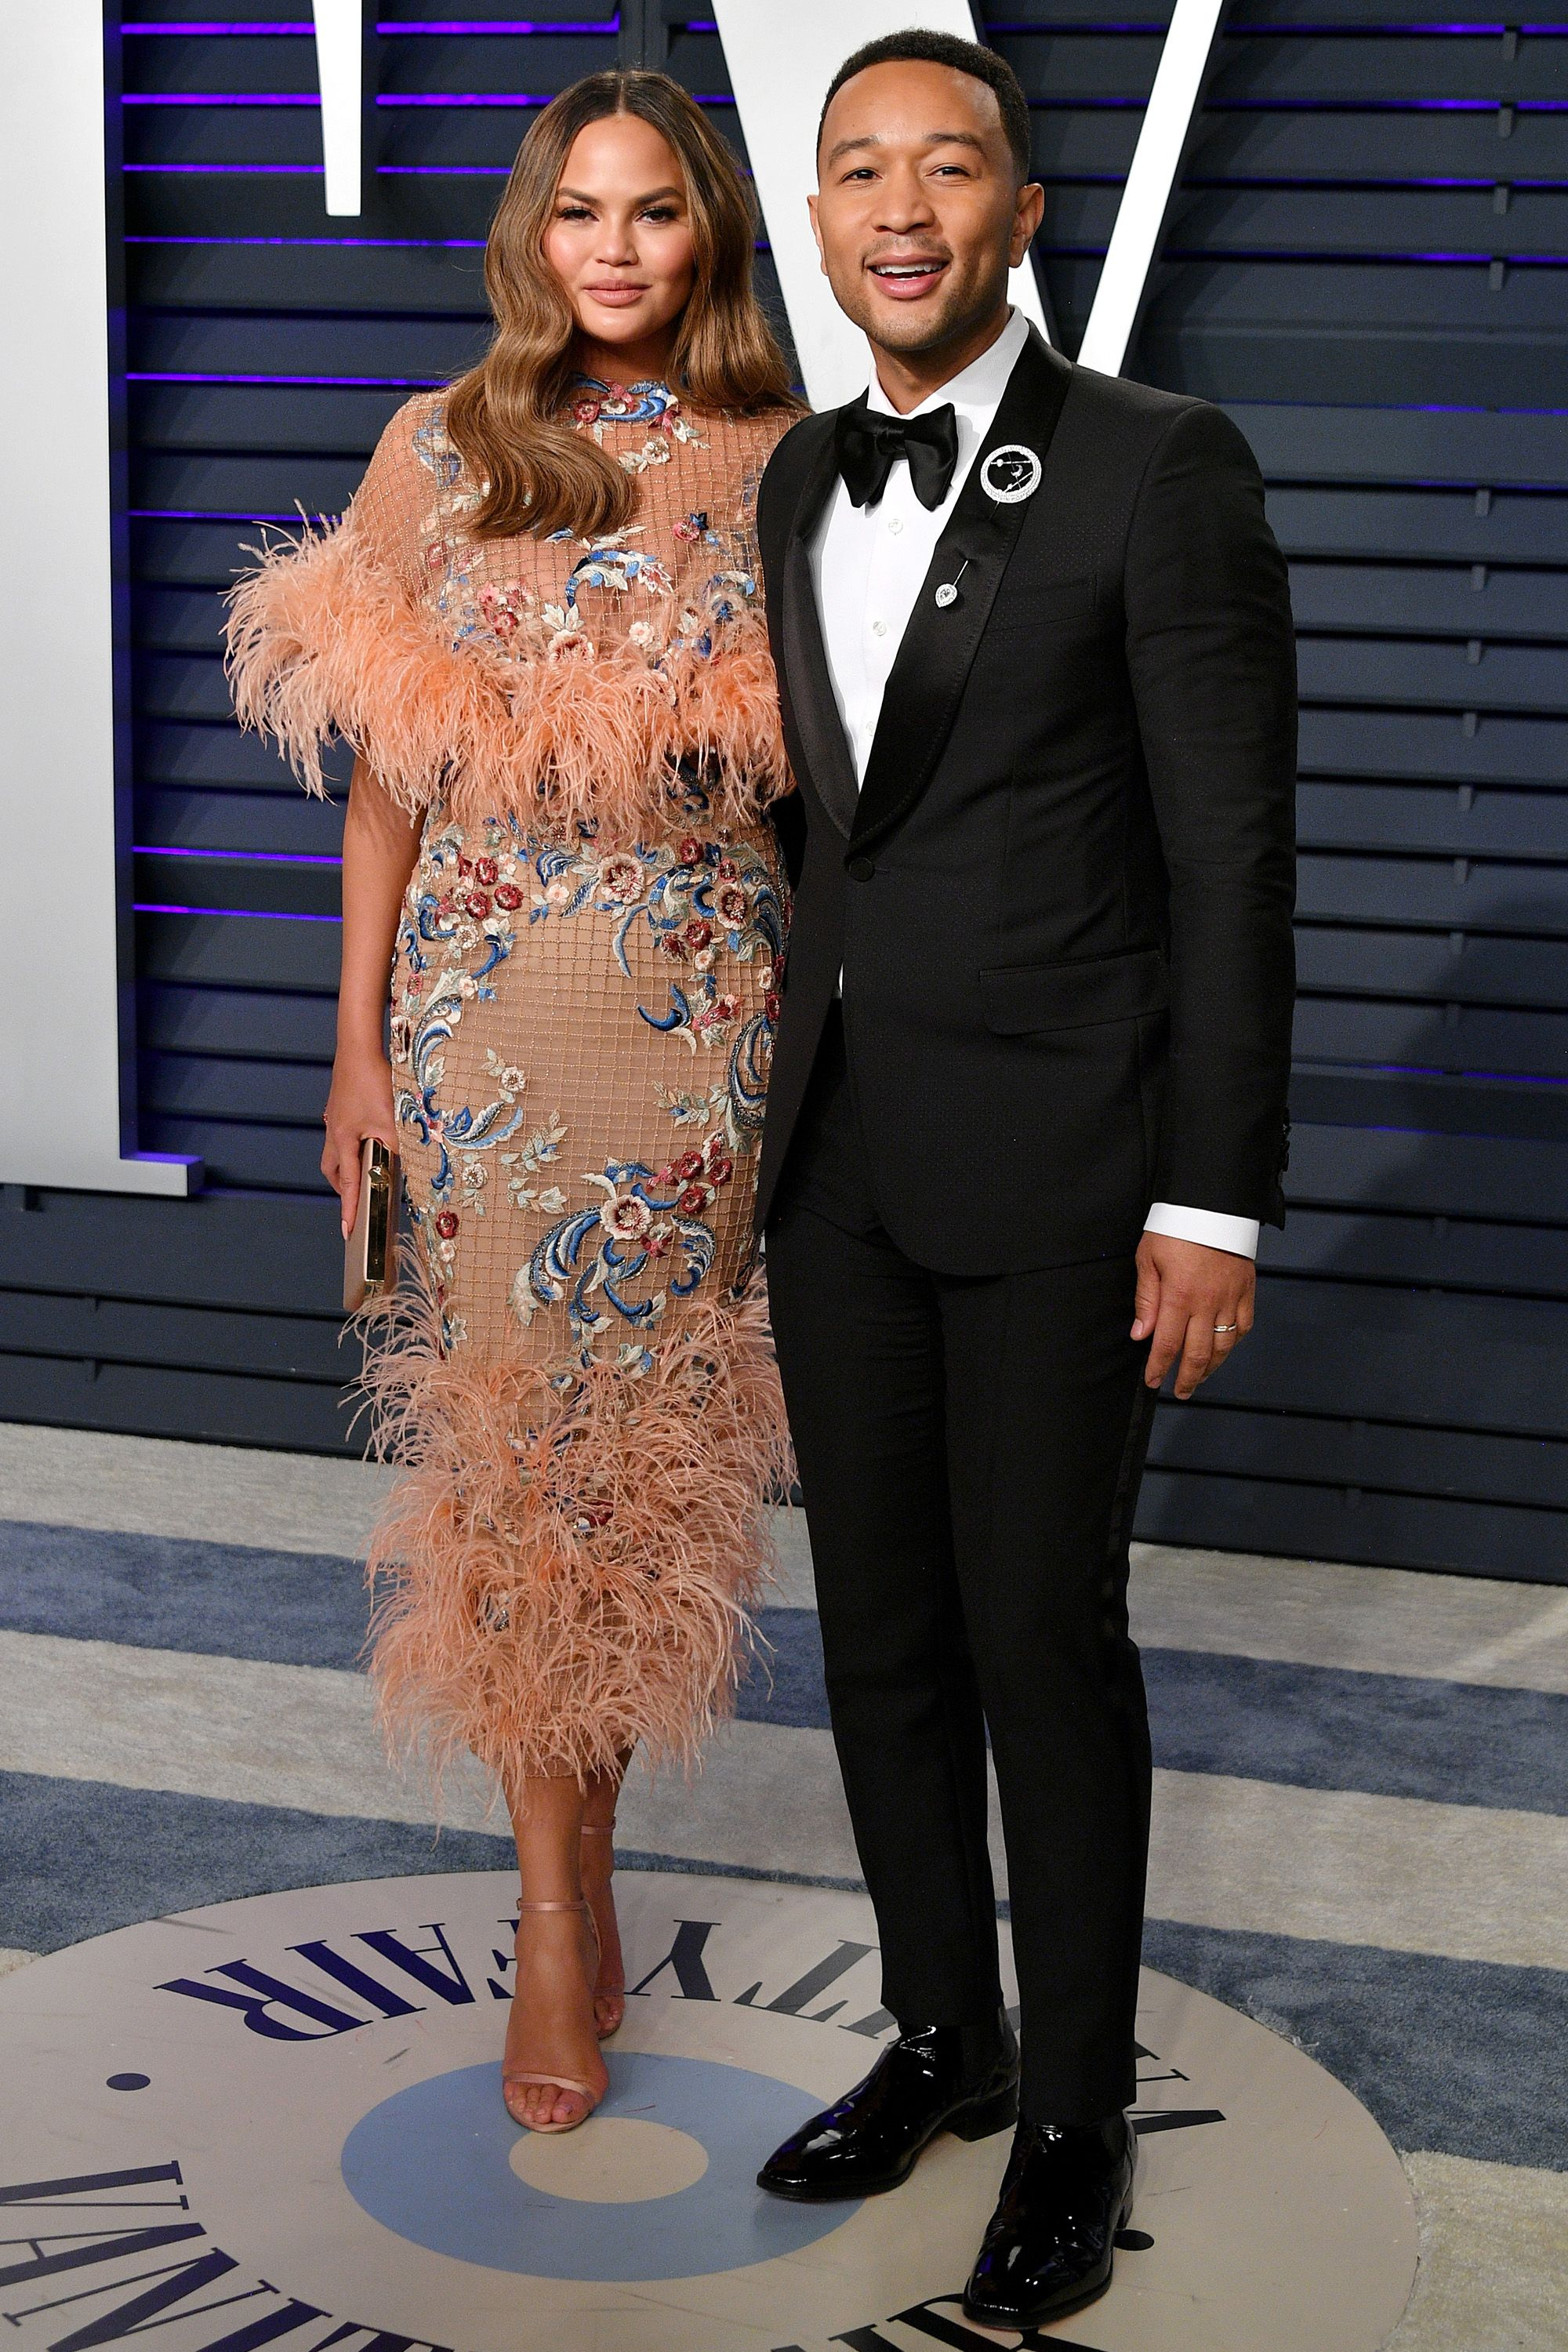 30 Power Couples That Are The Ultimate Couple Goals - The